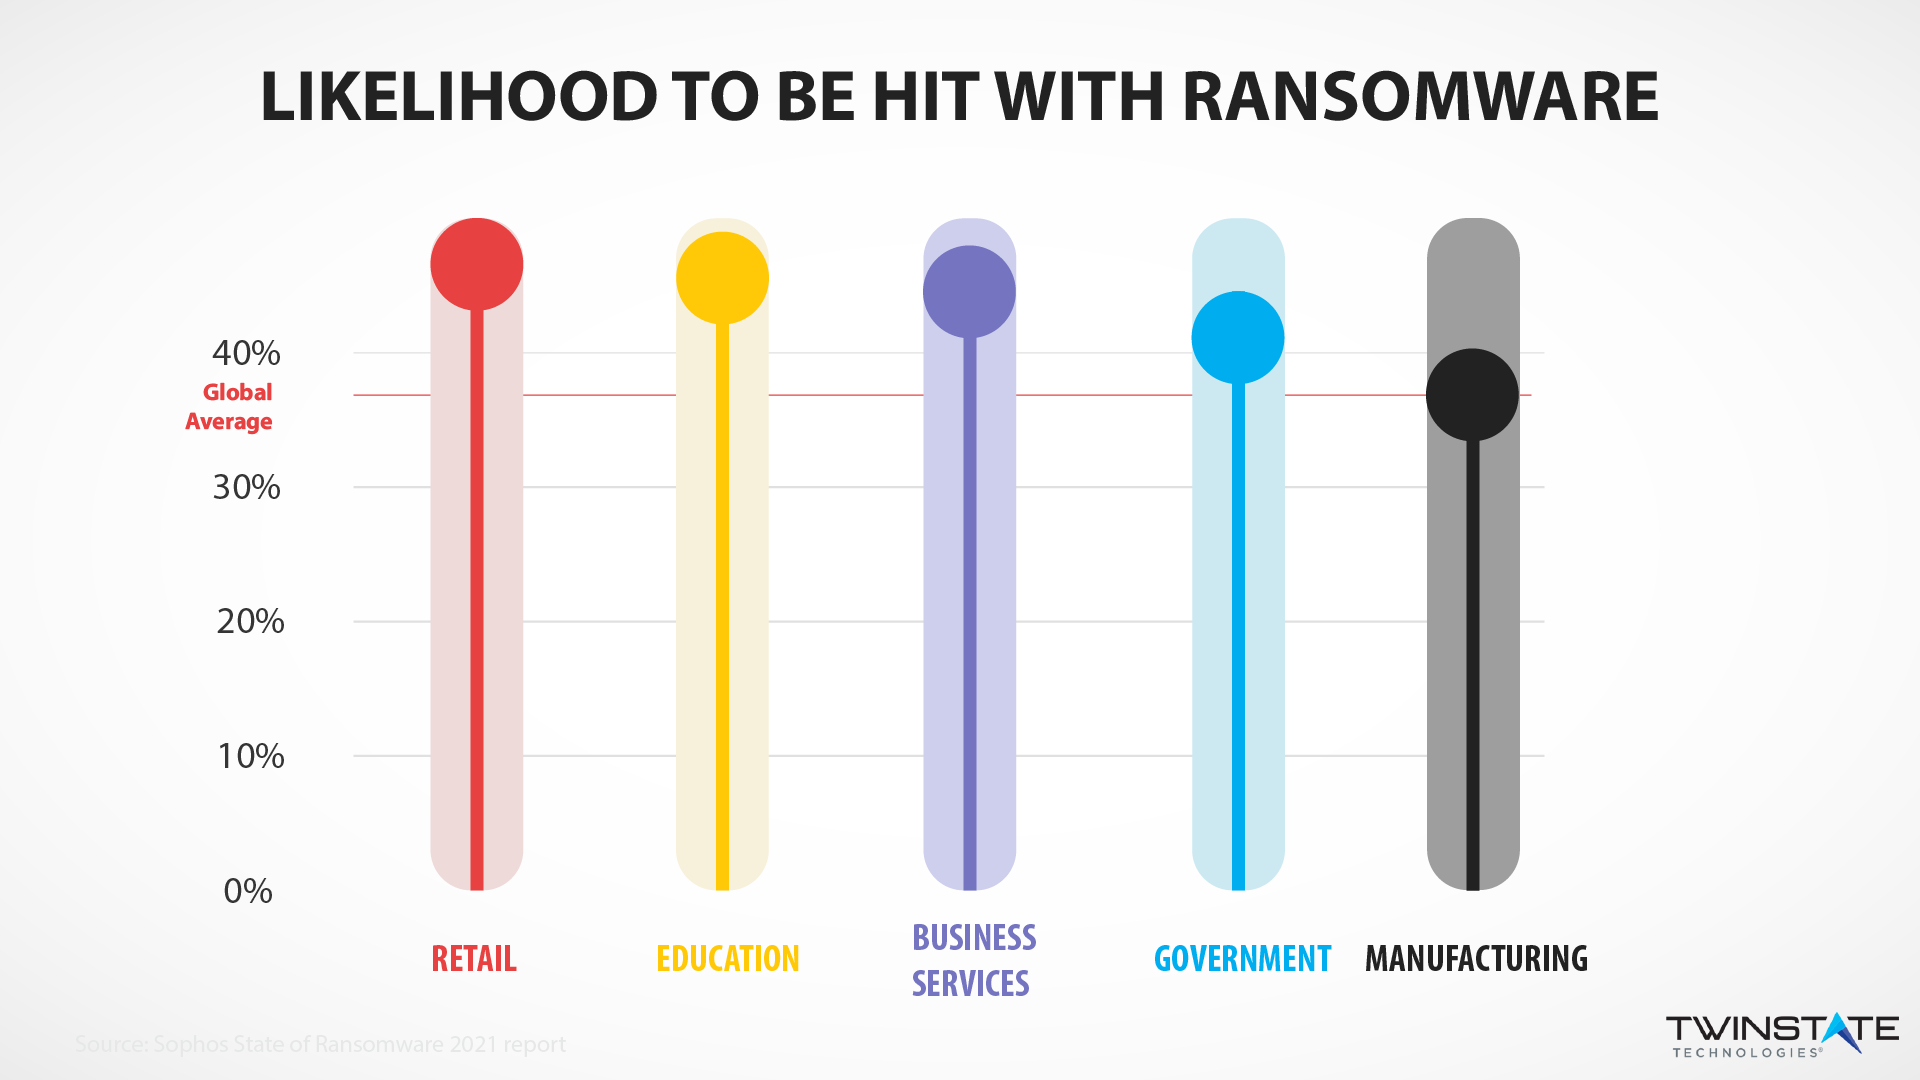 ransomware stats for 2021: the likelihood-to-be infected by ransomware across  sectors